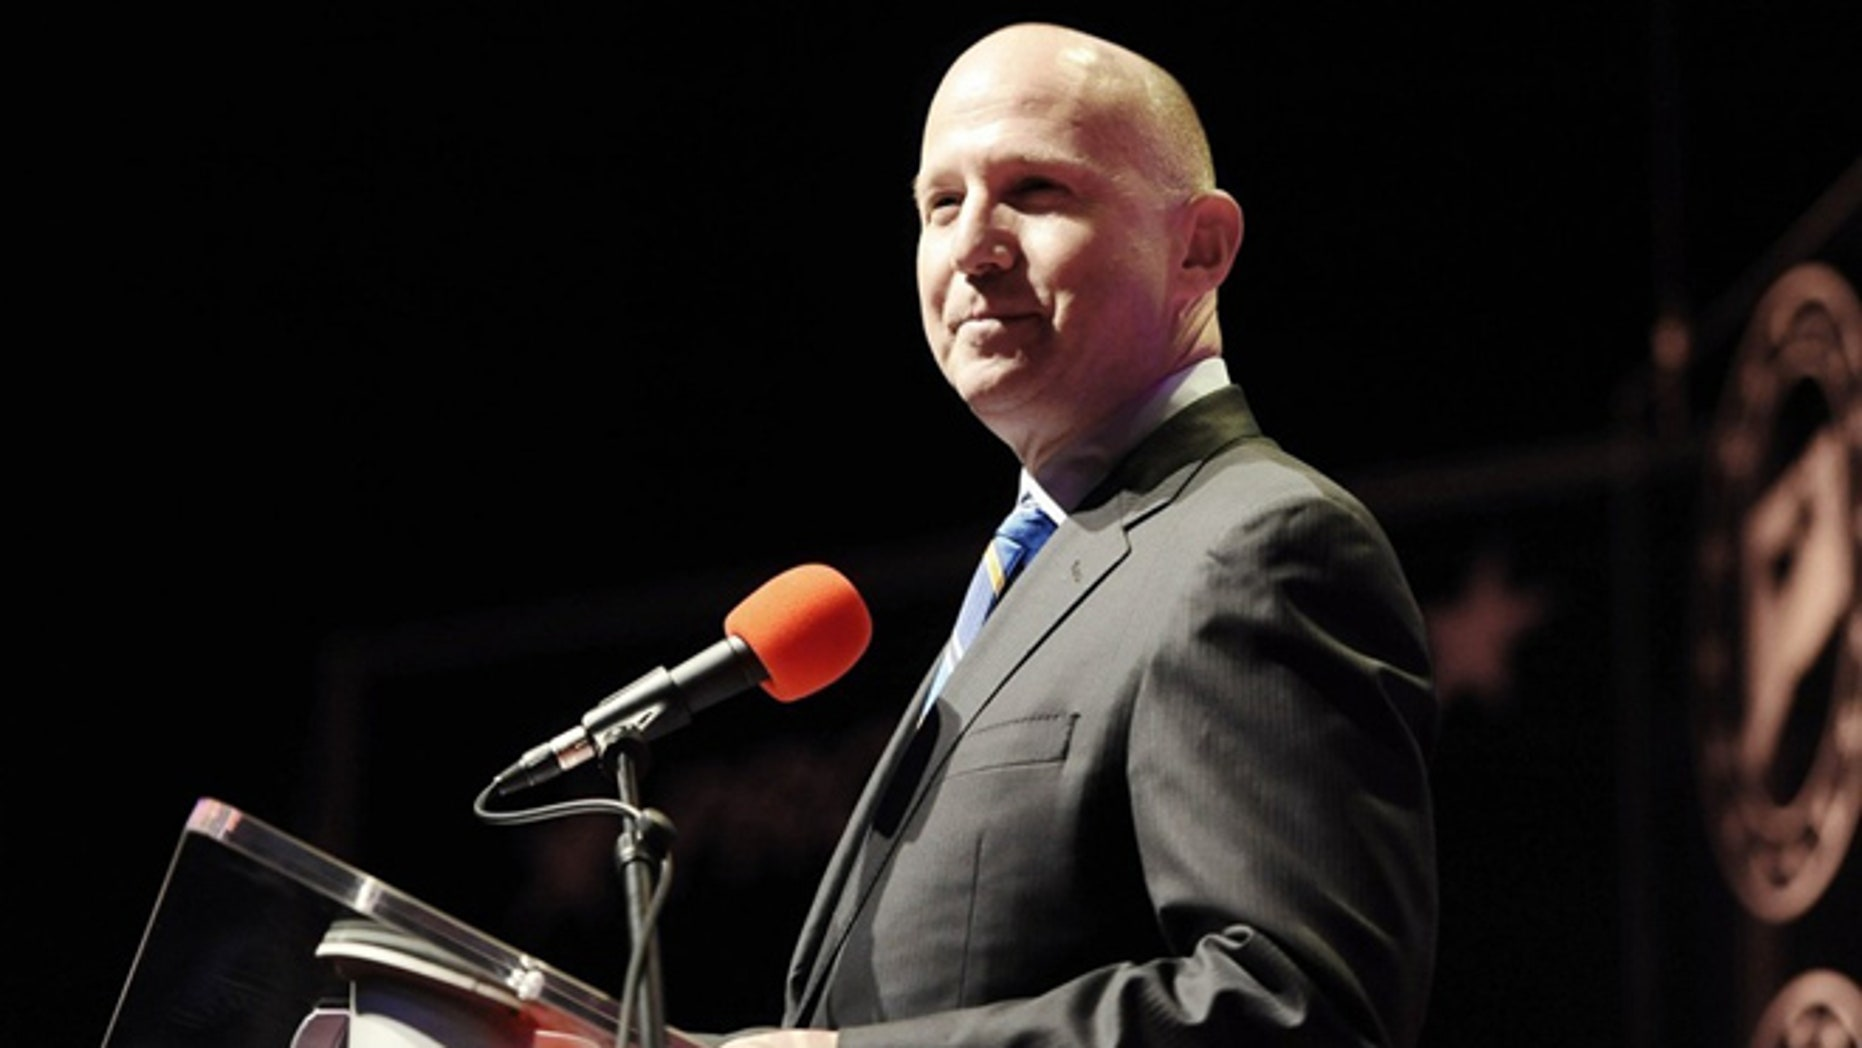 Governor Jack Markell, D-Del., is shown. (Associated Press)